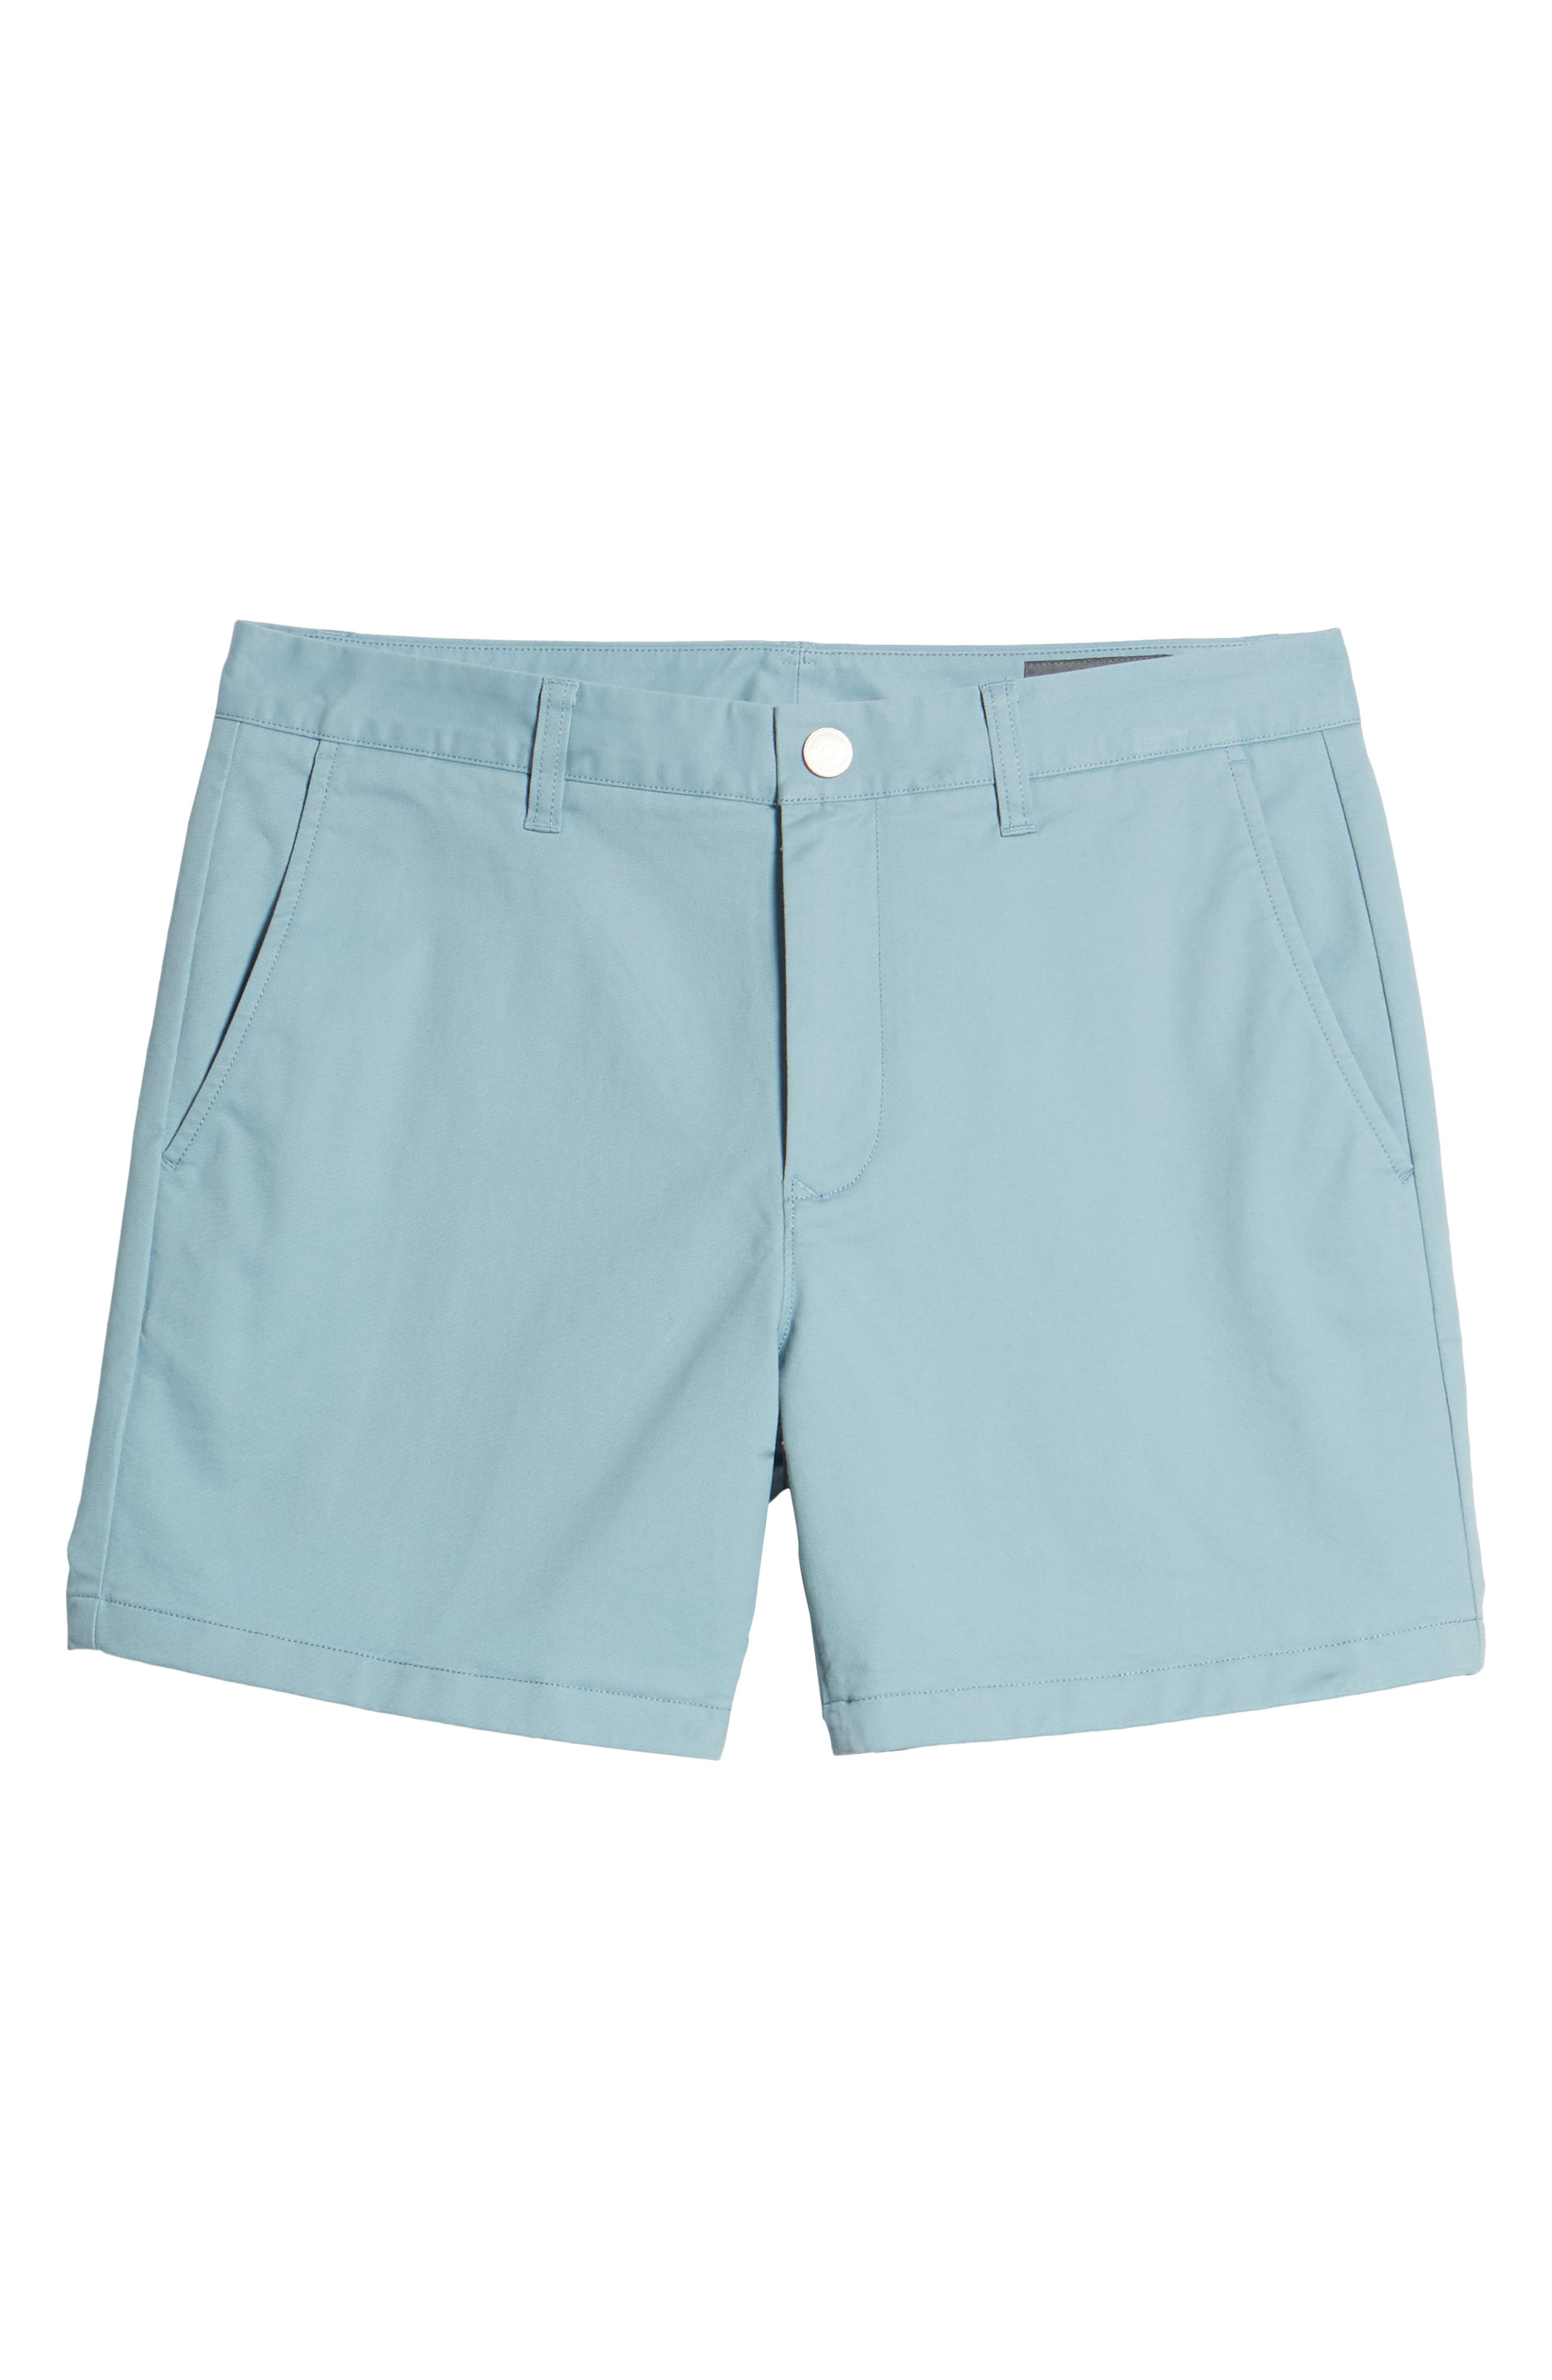 Stretch Washed Chino 5-Inch Shorts,                             Alternate thumbnail 153, color,